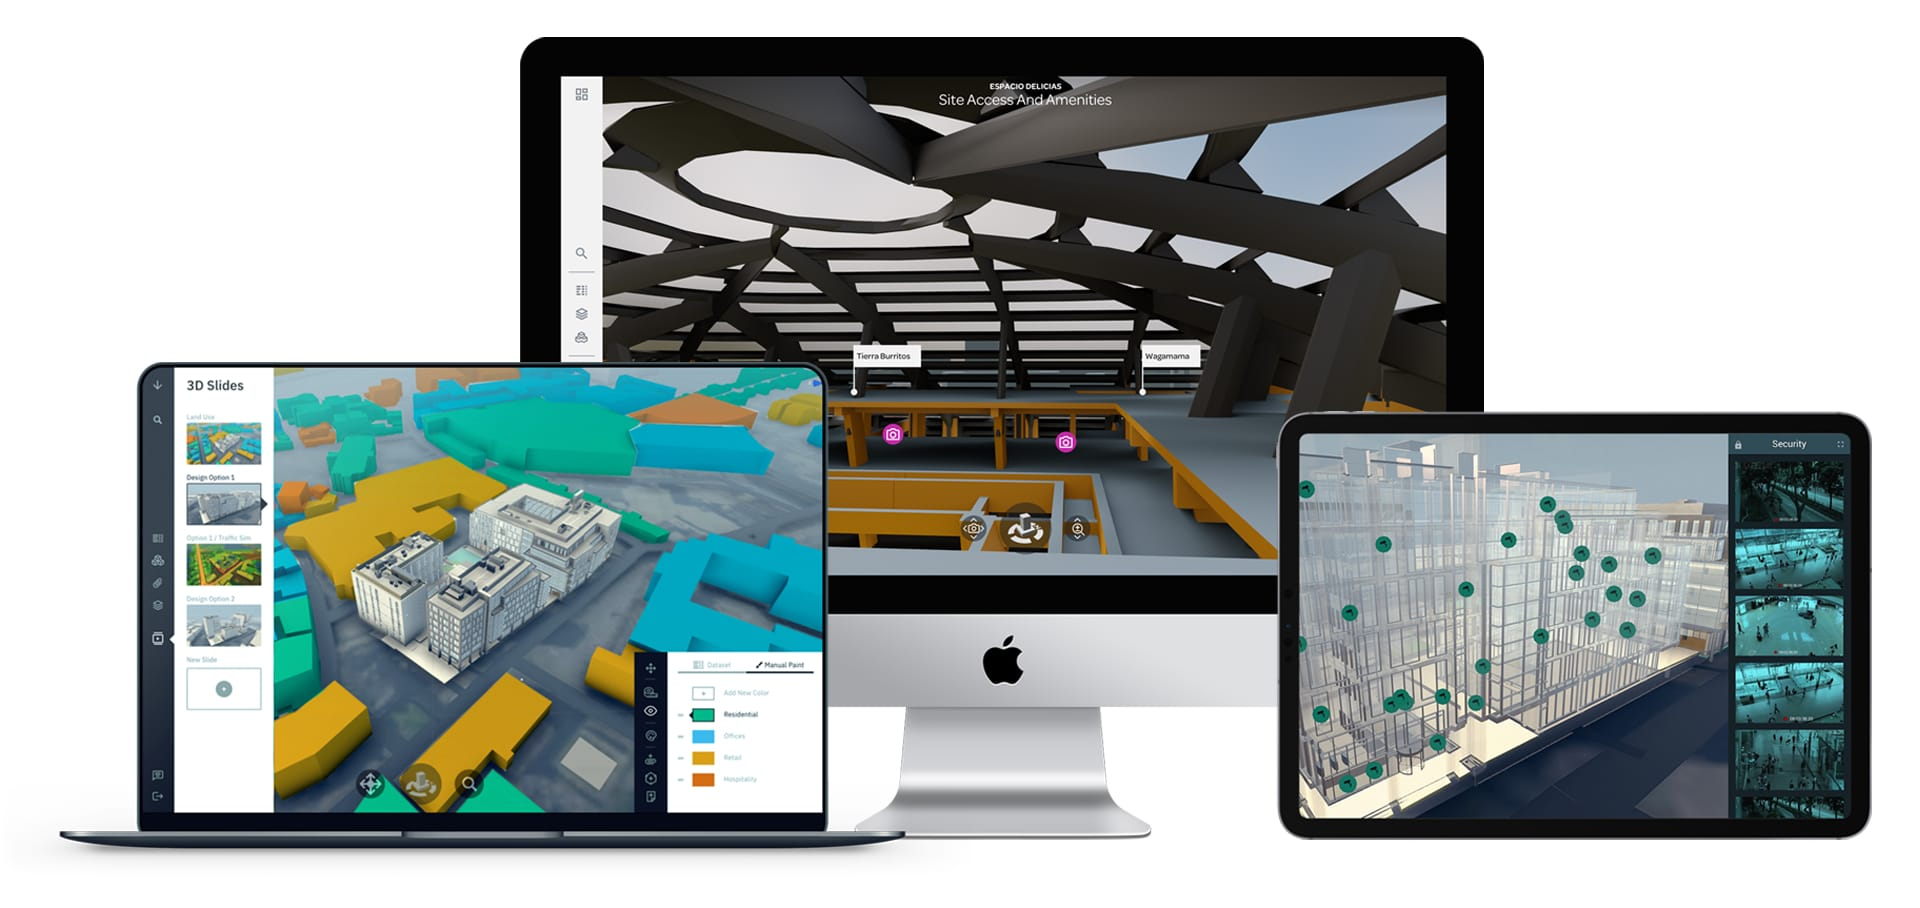 Cityzenith: site access and amenities